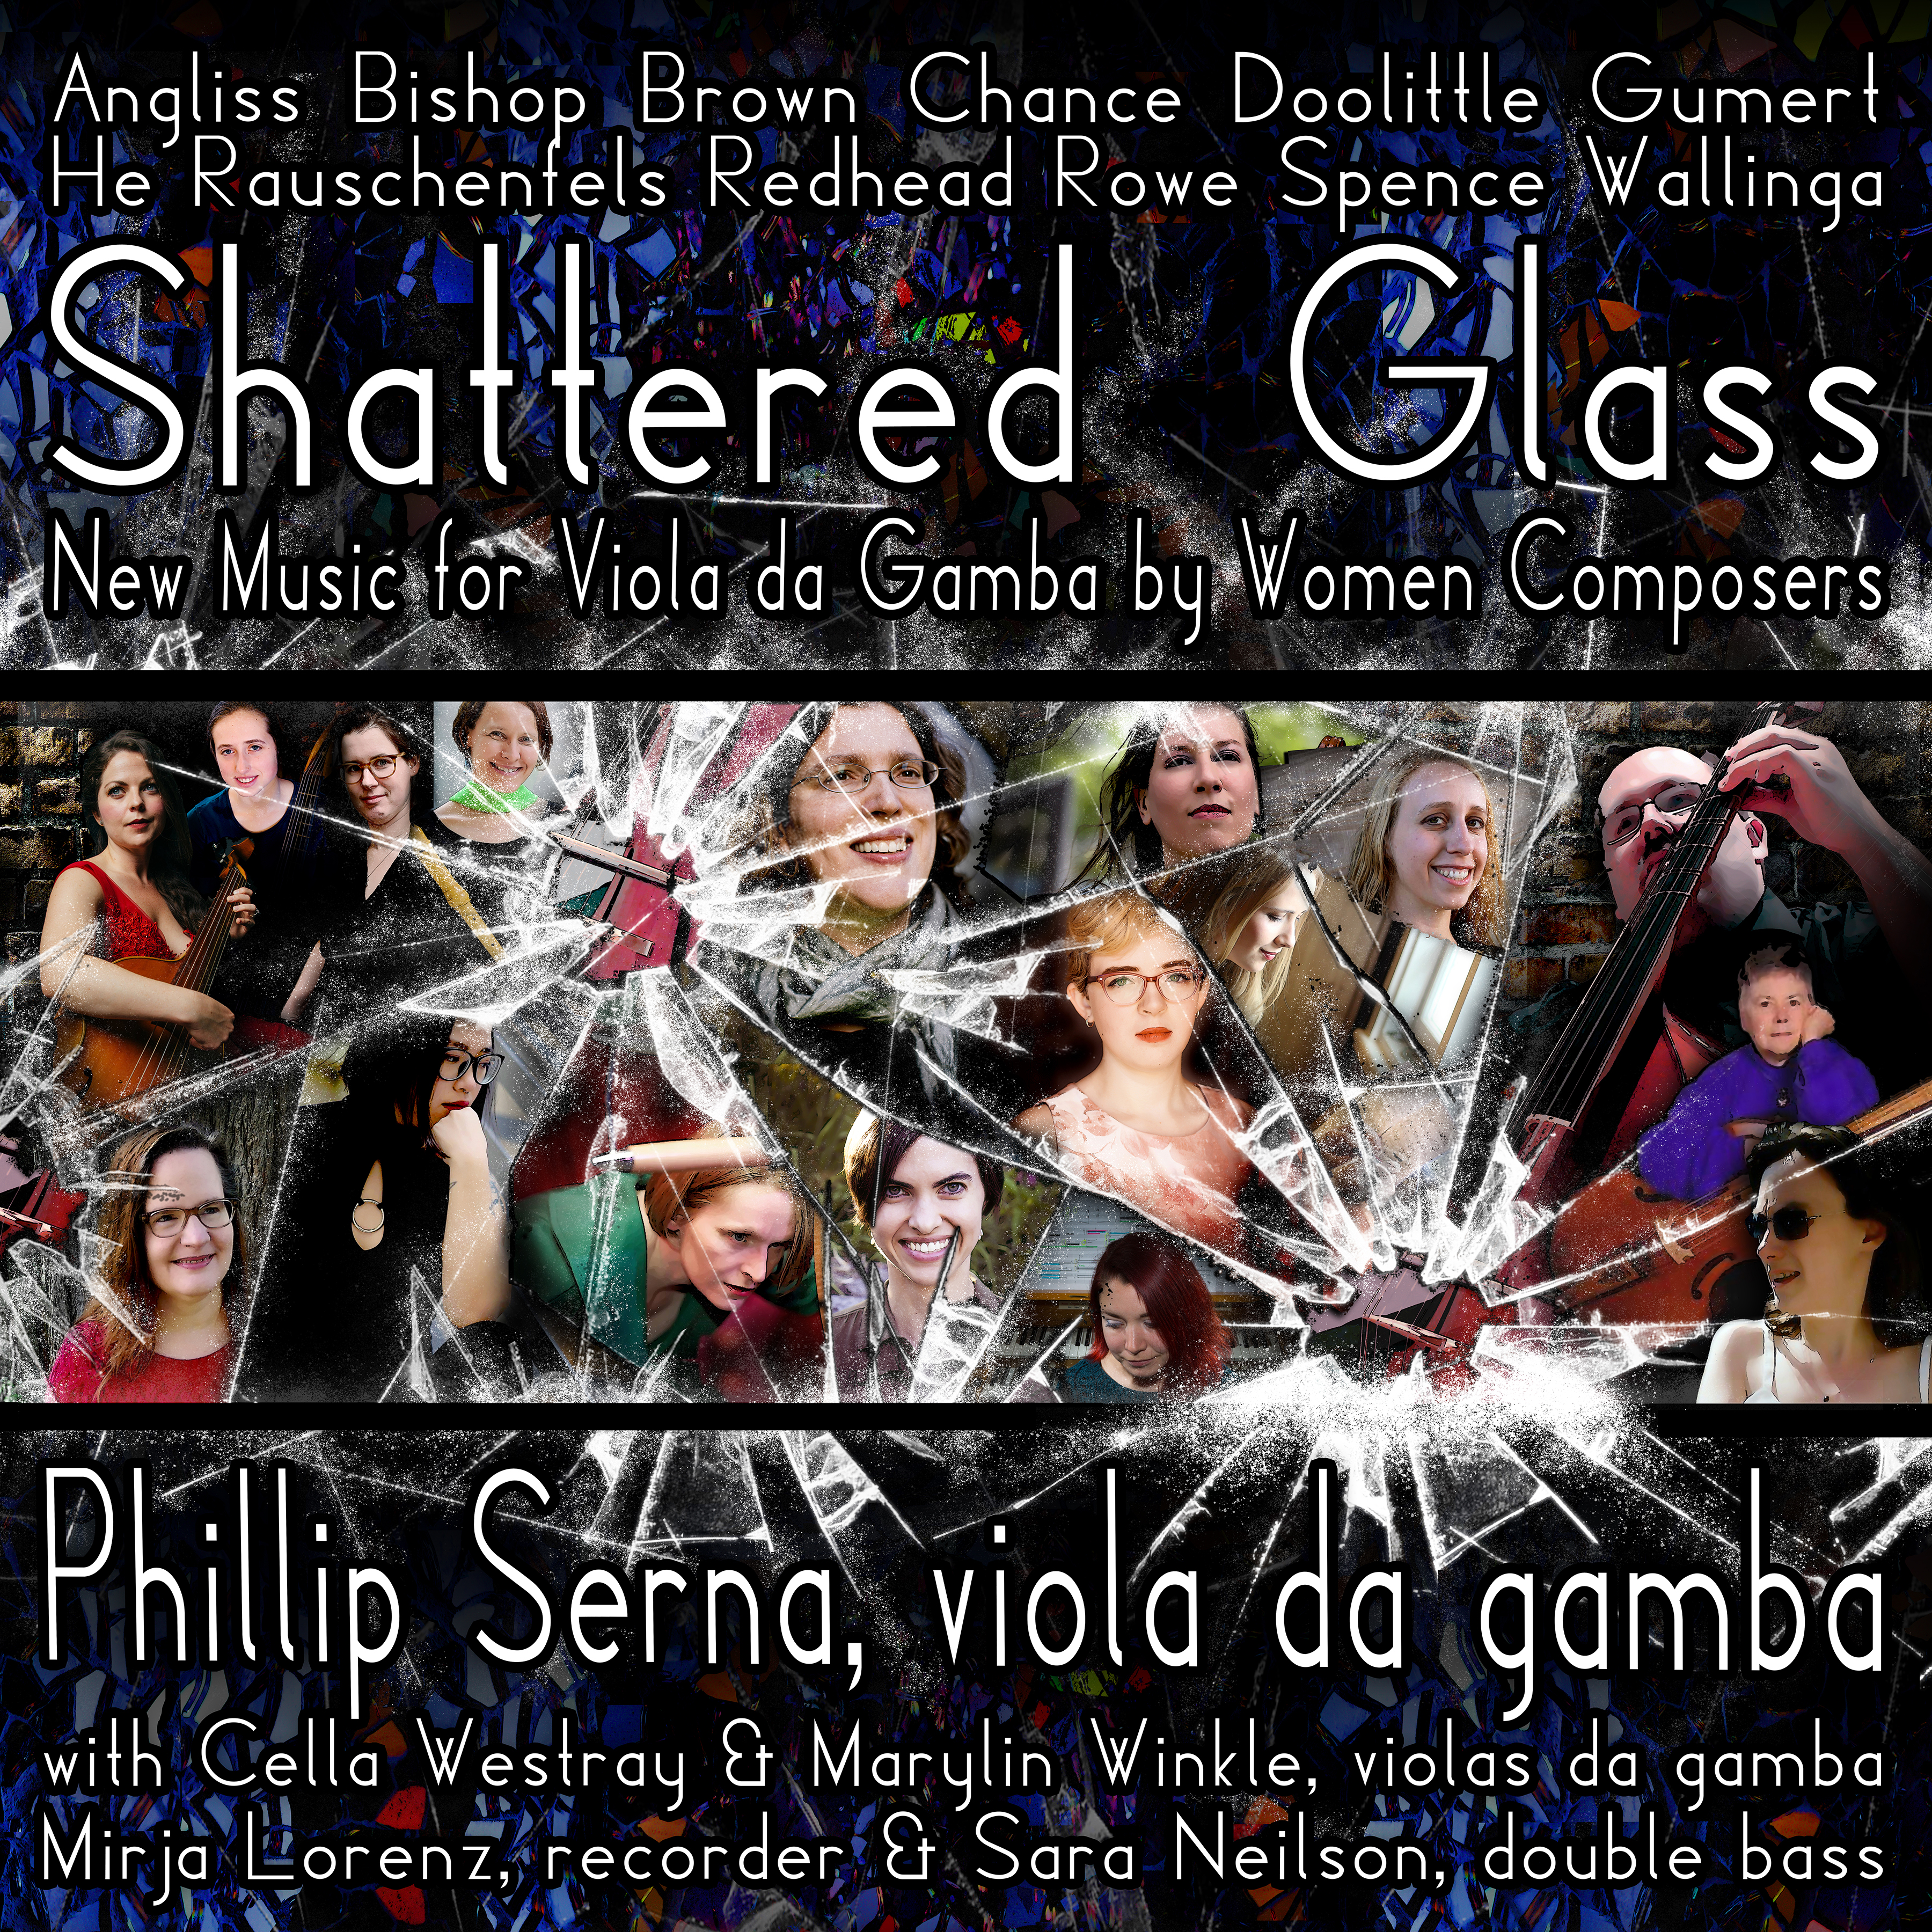 Sample Shattered Glass - New Music for Viola da Gamba by Women Composers